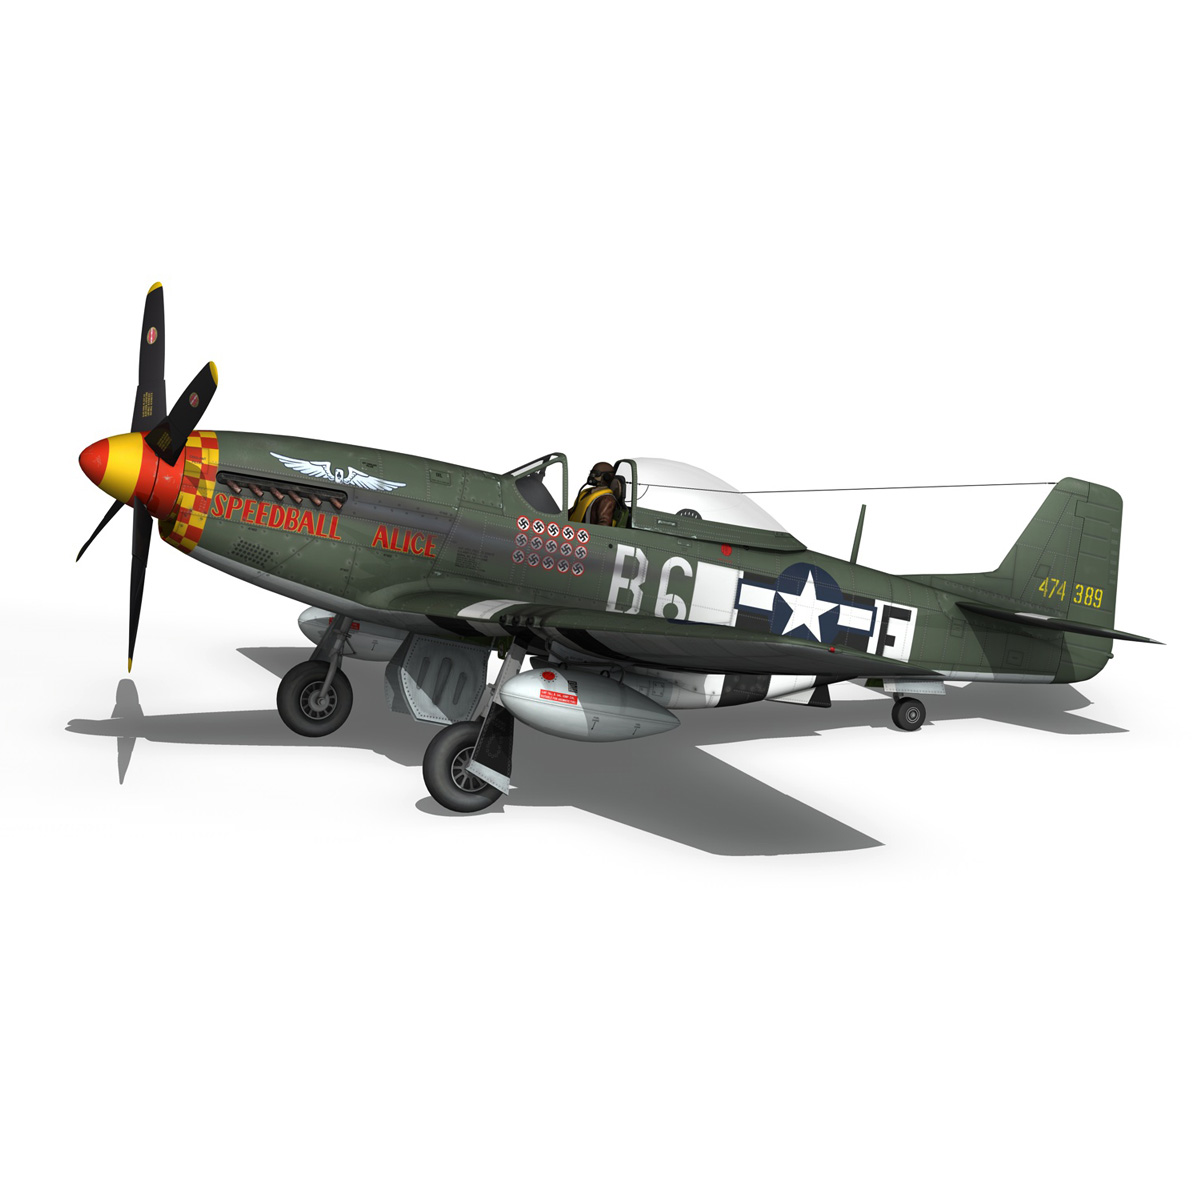 north american p-51d mustang – speedball alice 3d model fbx c4d lwo obj 280320